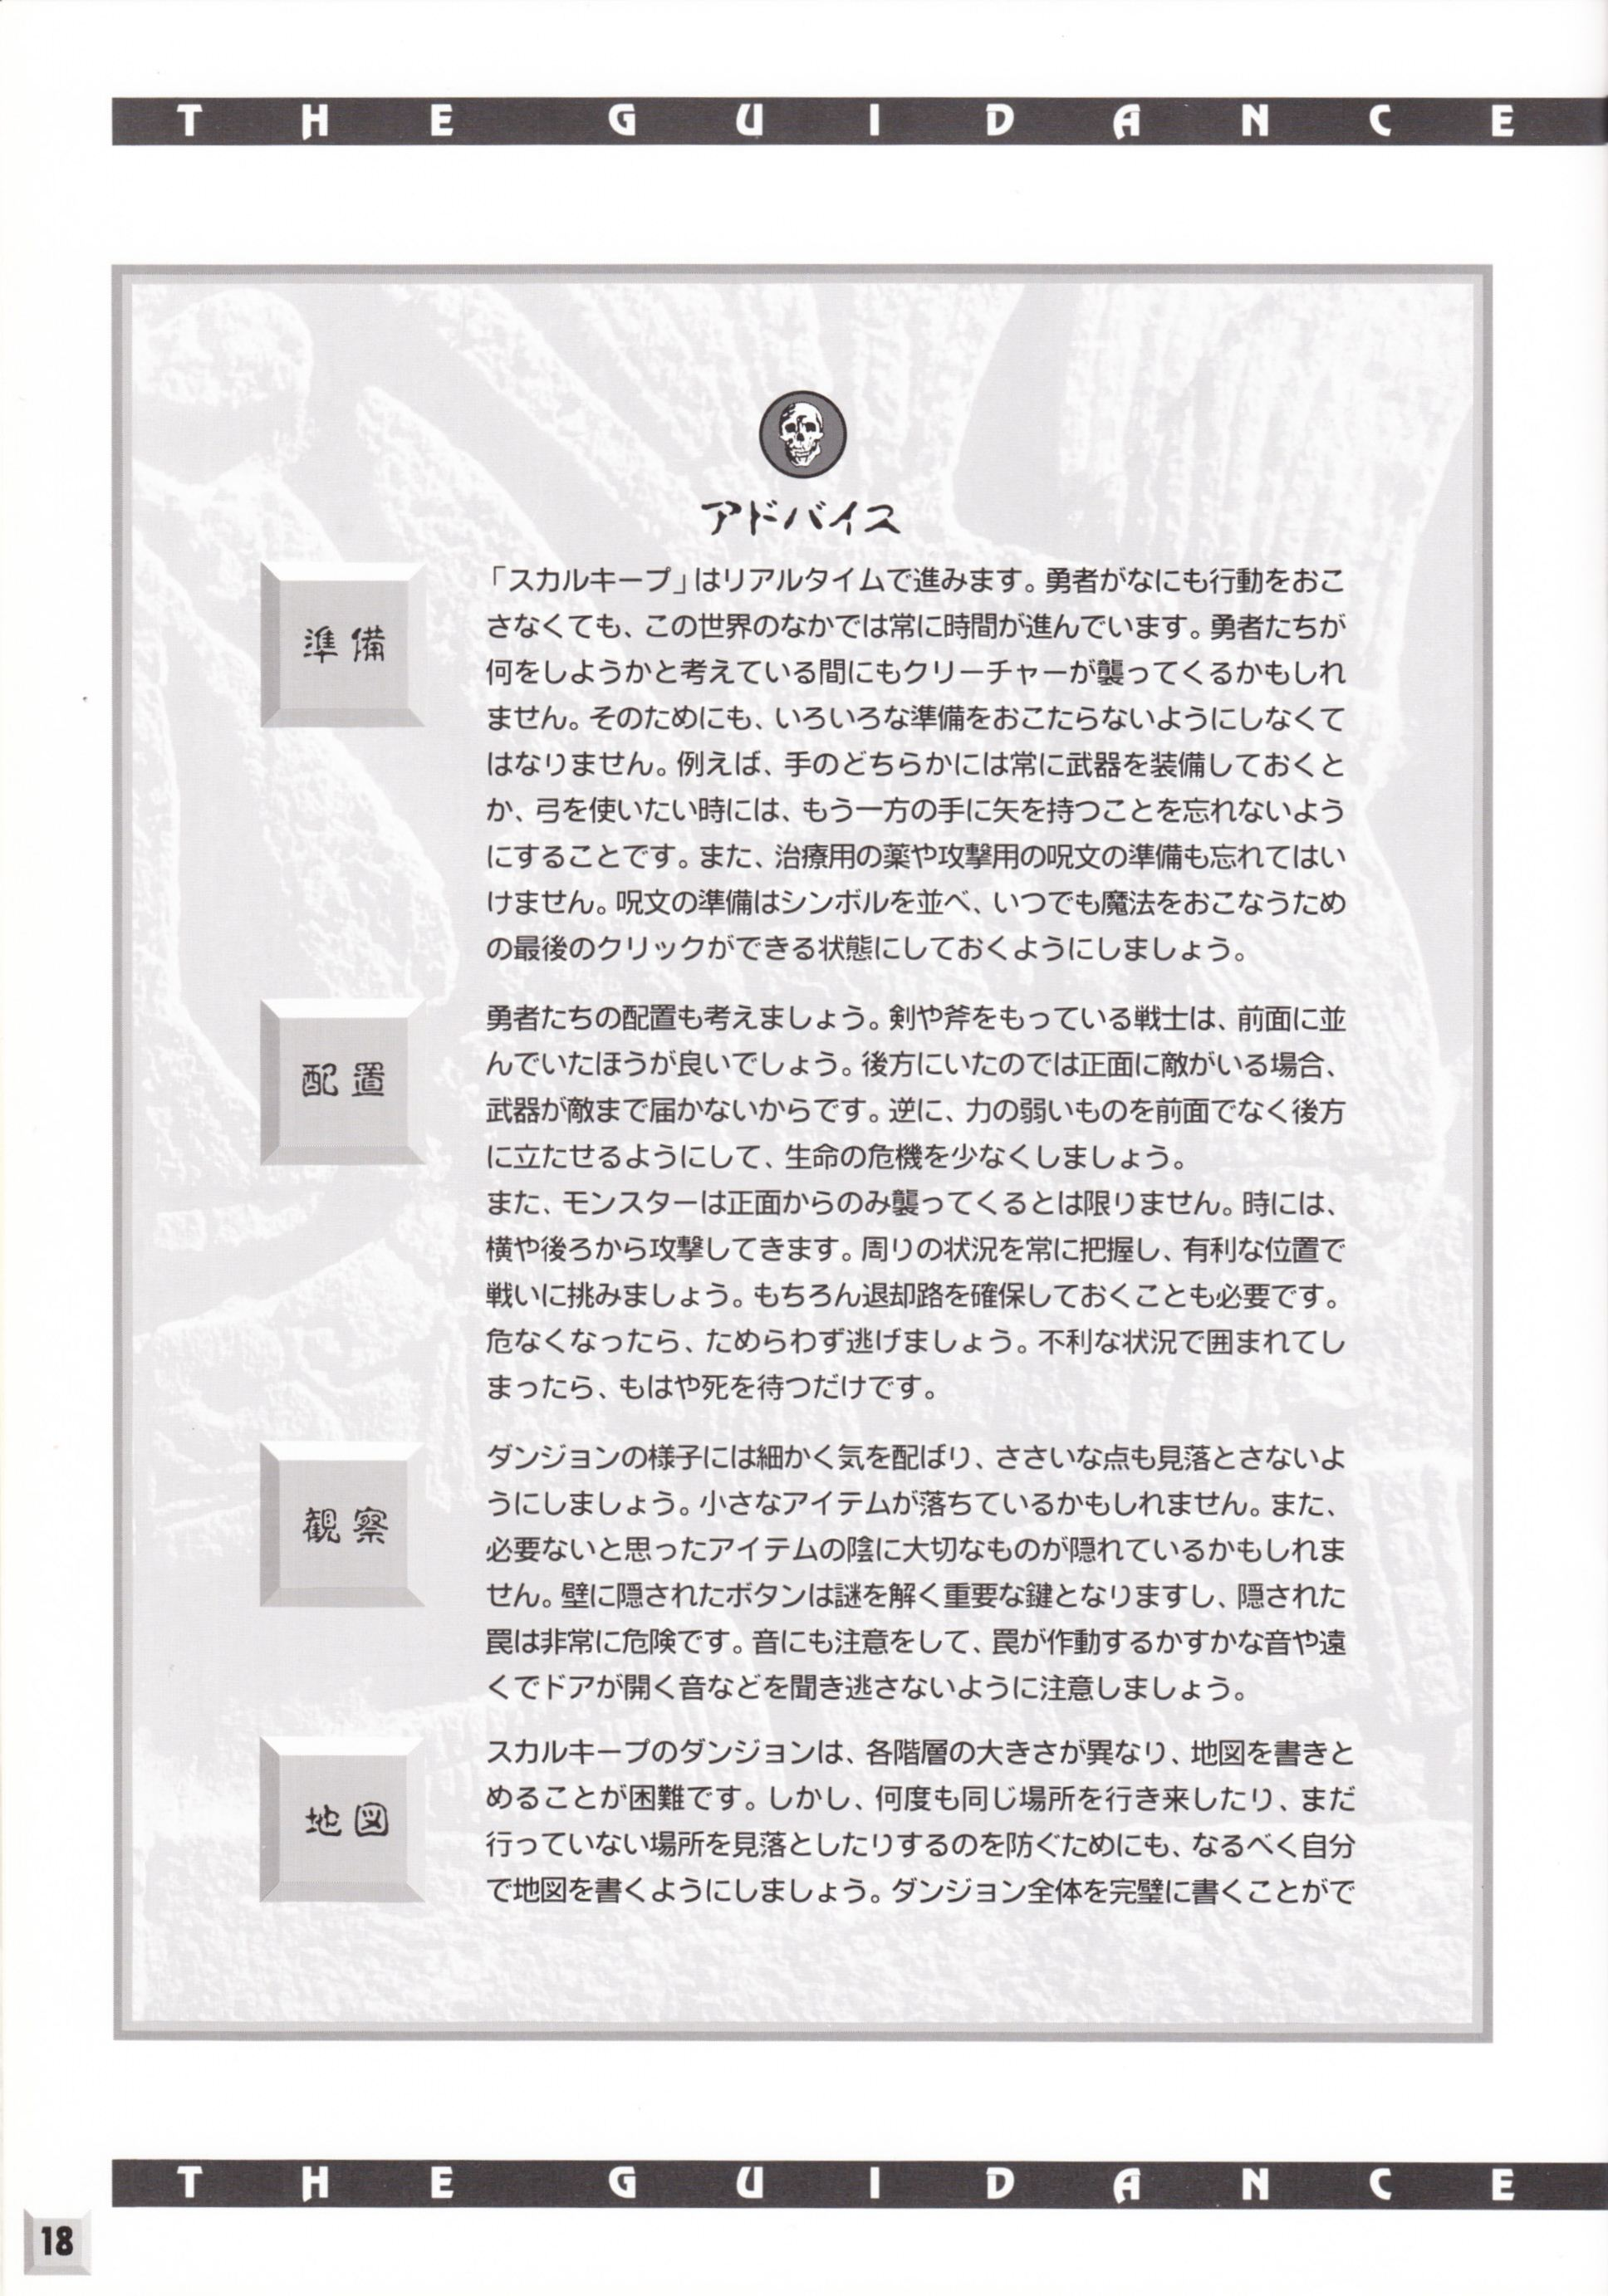 Game - Dungeon Master II - JP - PC-9801 - 3.5-inch - The Guidance Of Adventure - Page 020 - Scan